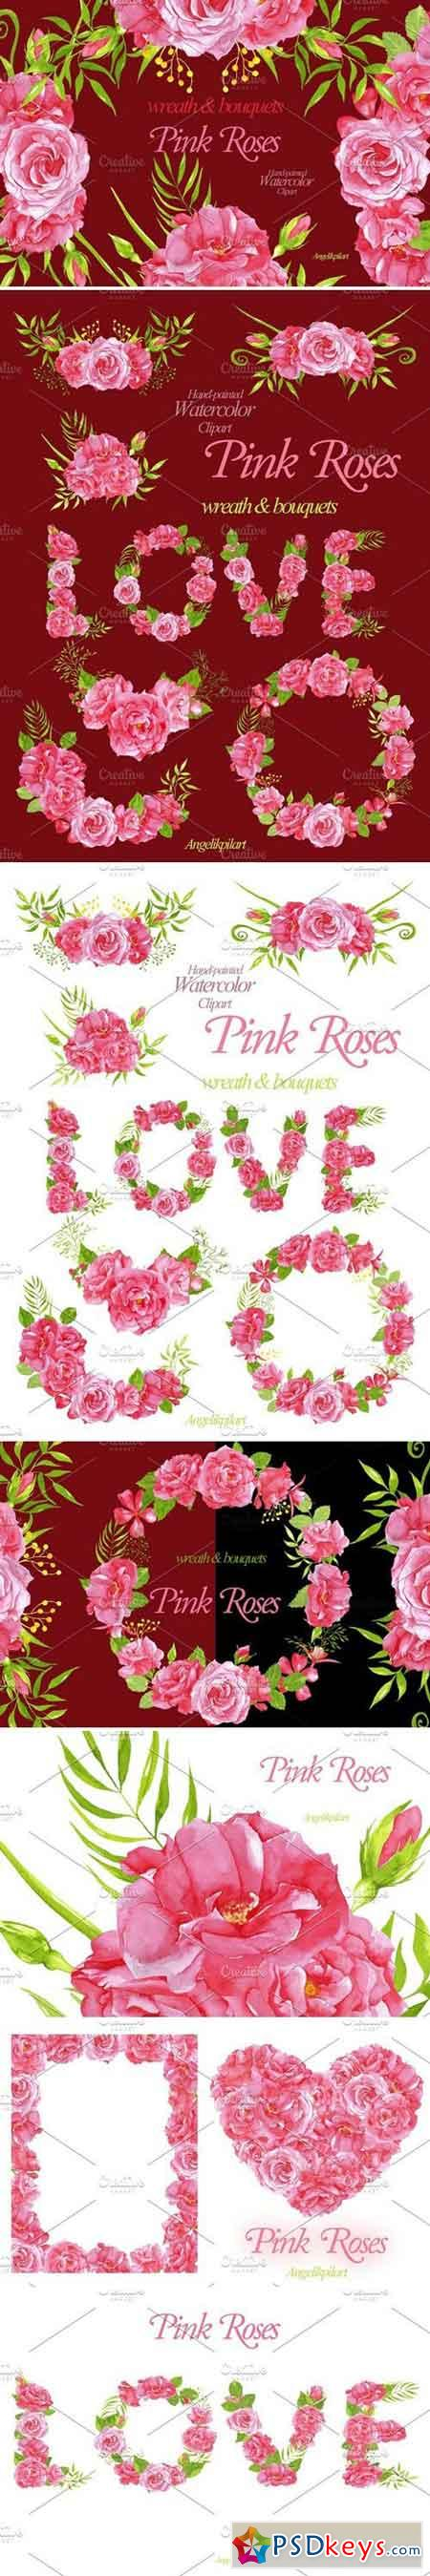 watercolor PinkRoses wreath&bouquets 1600048